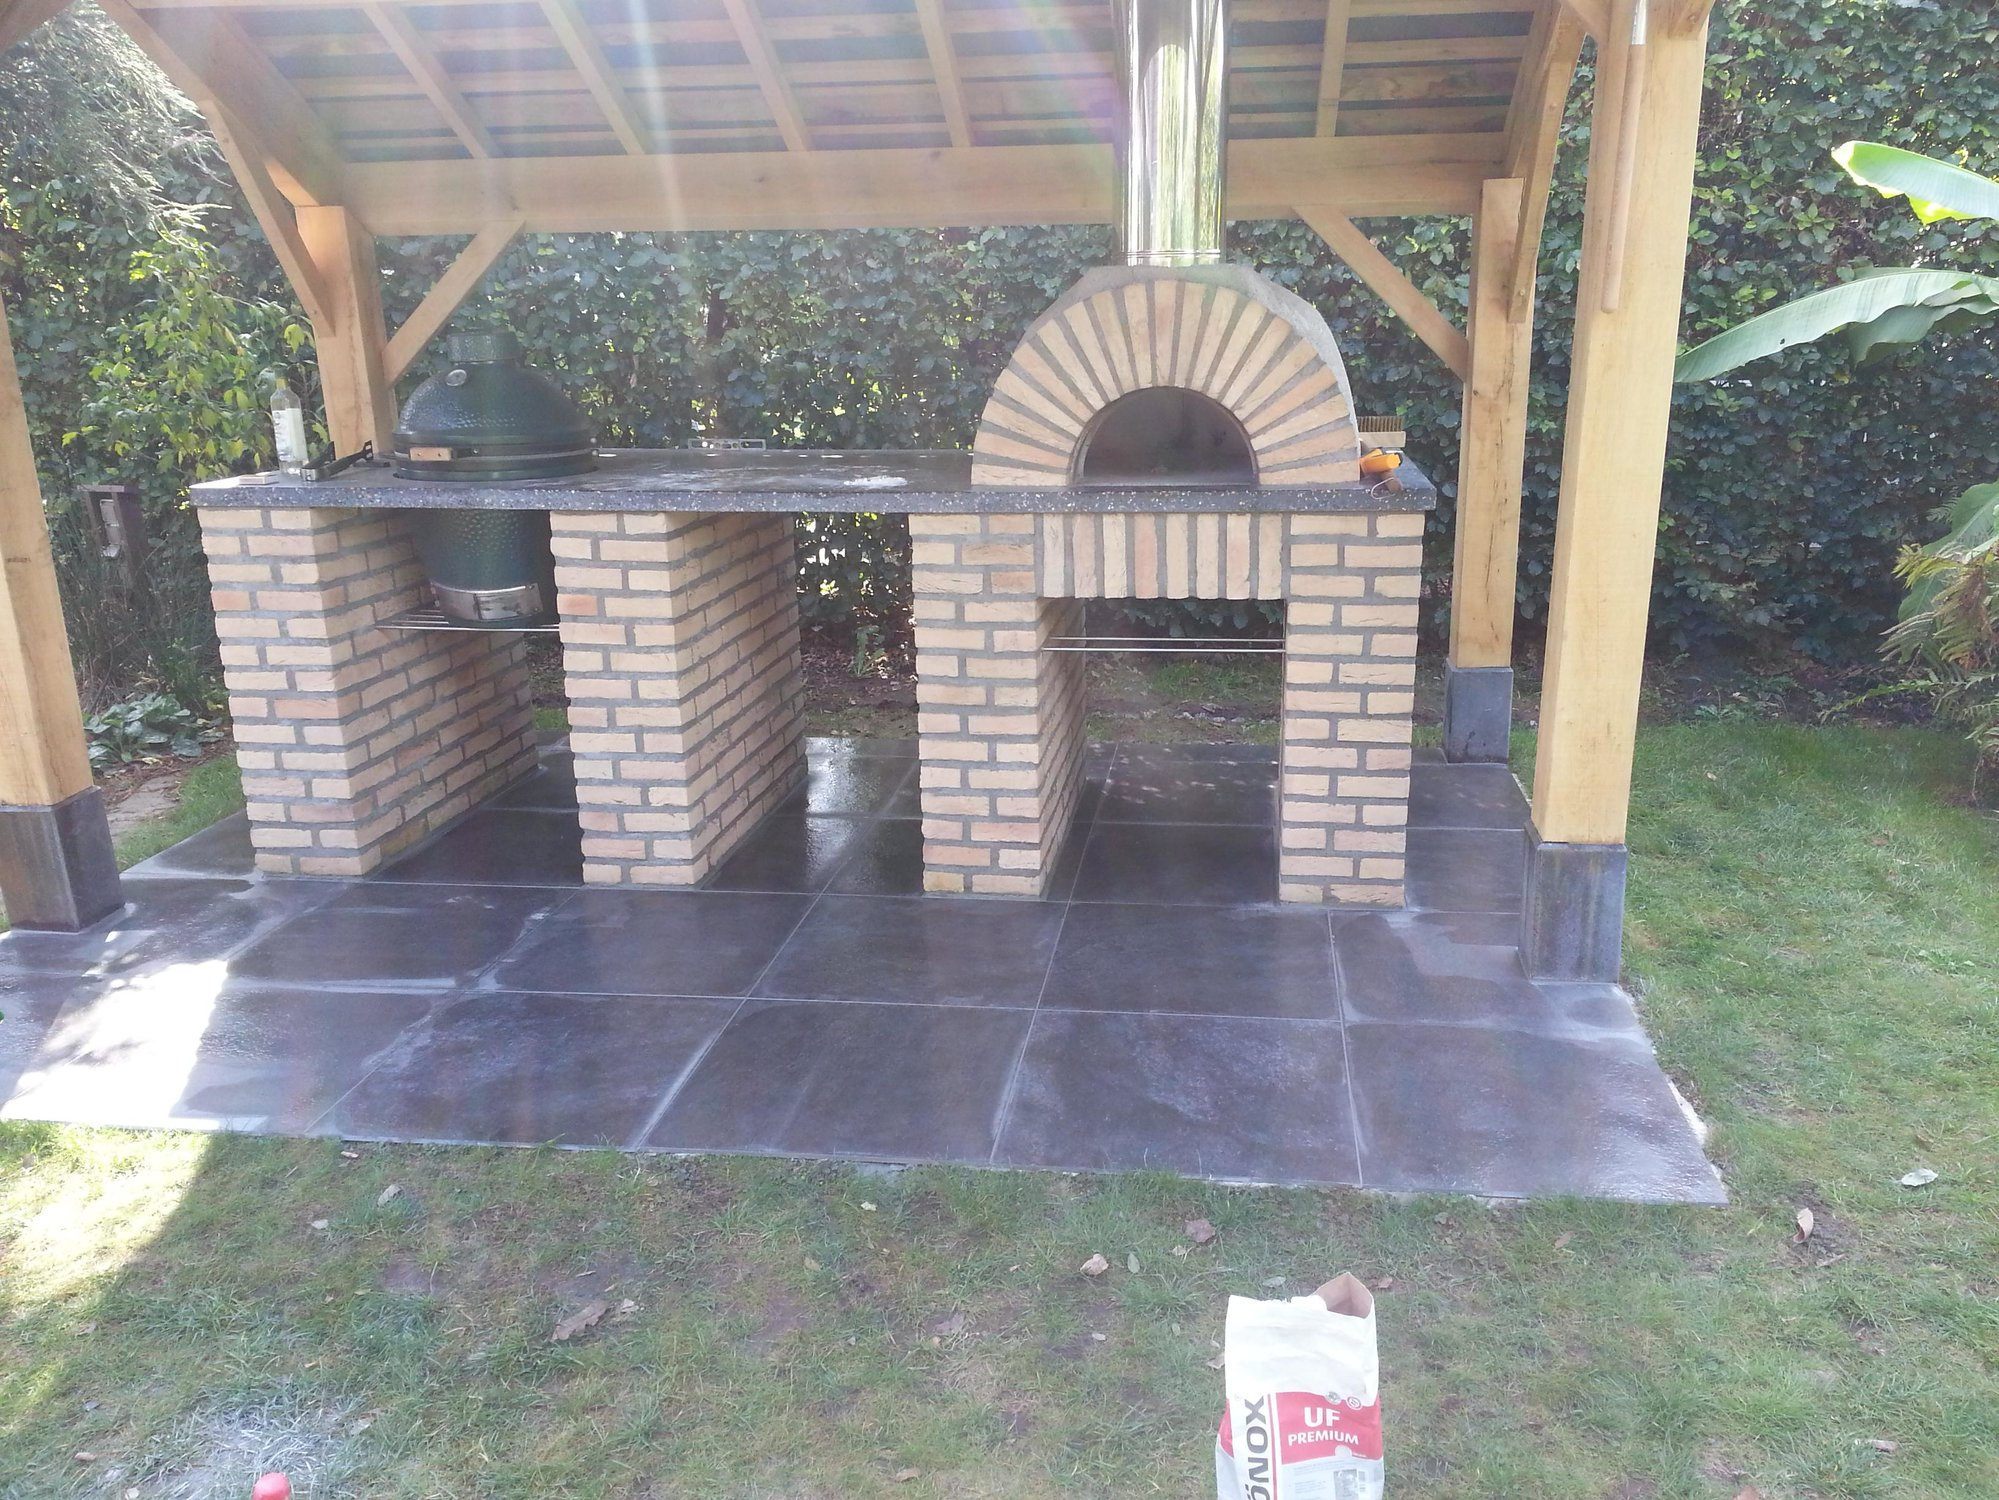 Big Green Egg Outdoor Kitchen Outdoor Kitchen With Pizza Oven And Bge Big Green Egg Egghead